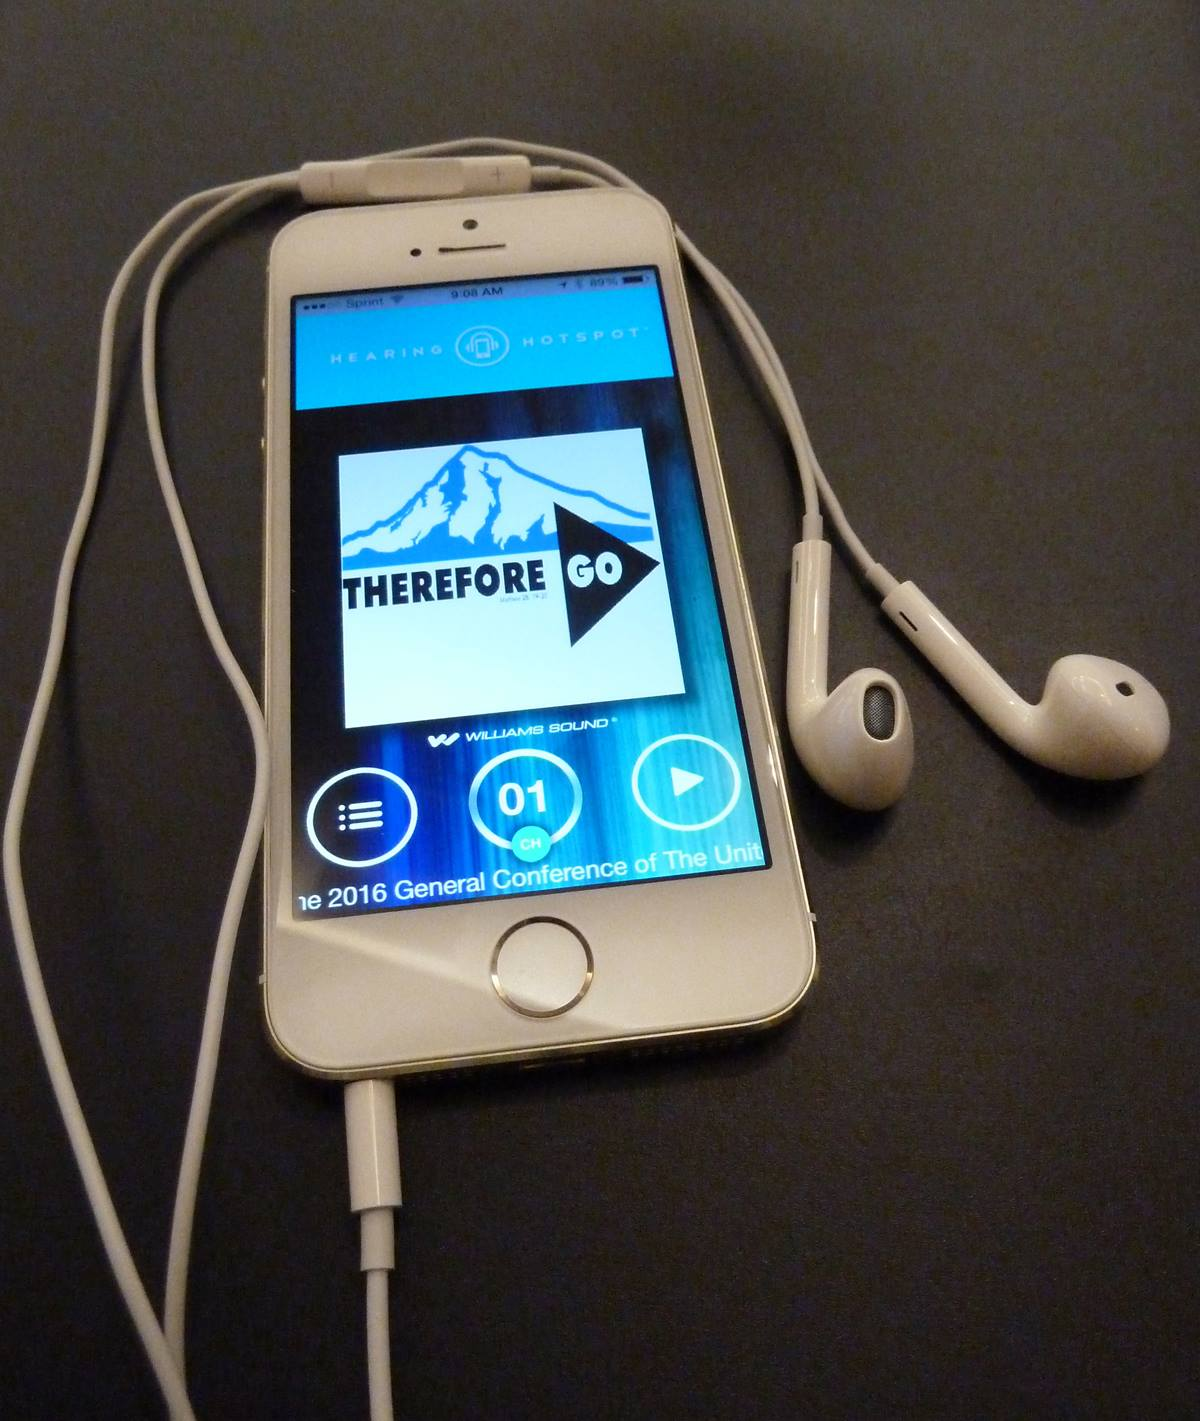 """A smart phone displays the logo """"Therefore Go"""" used for the United Methodist General Conference 2016. The headphones and app could provide a """"hearing hotspot"""" for translation into different languages.  Photo by Greg Nelson"""